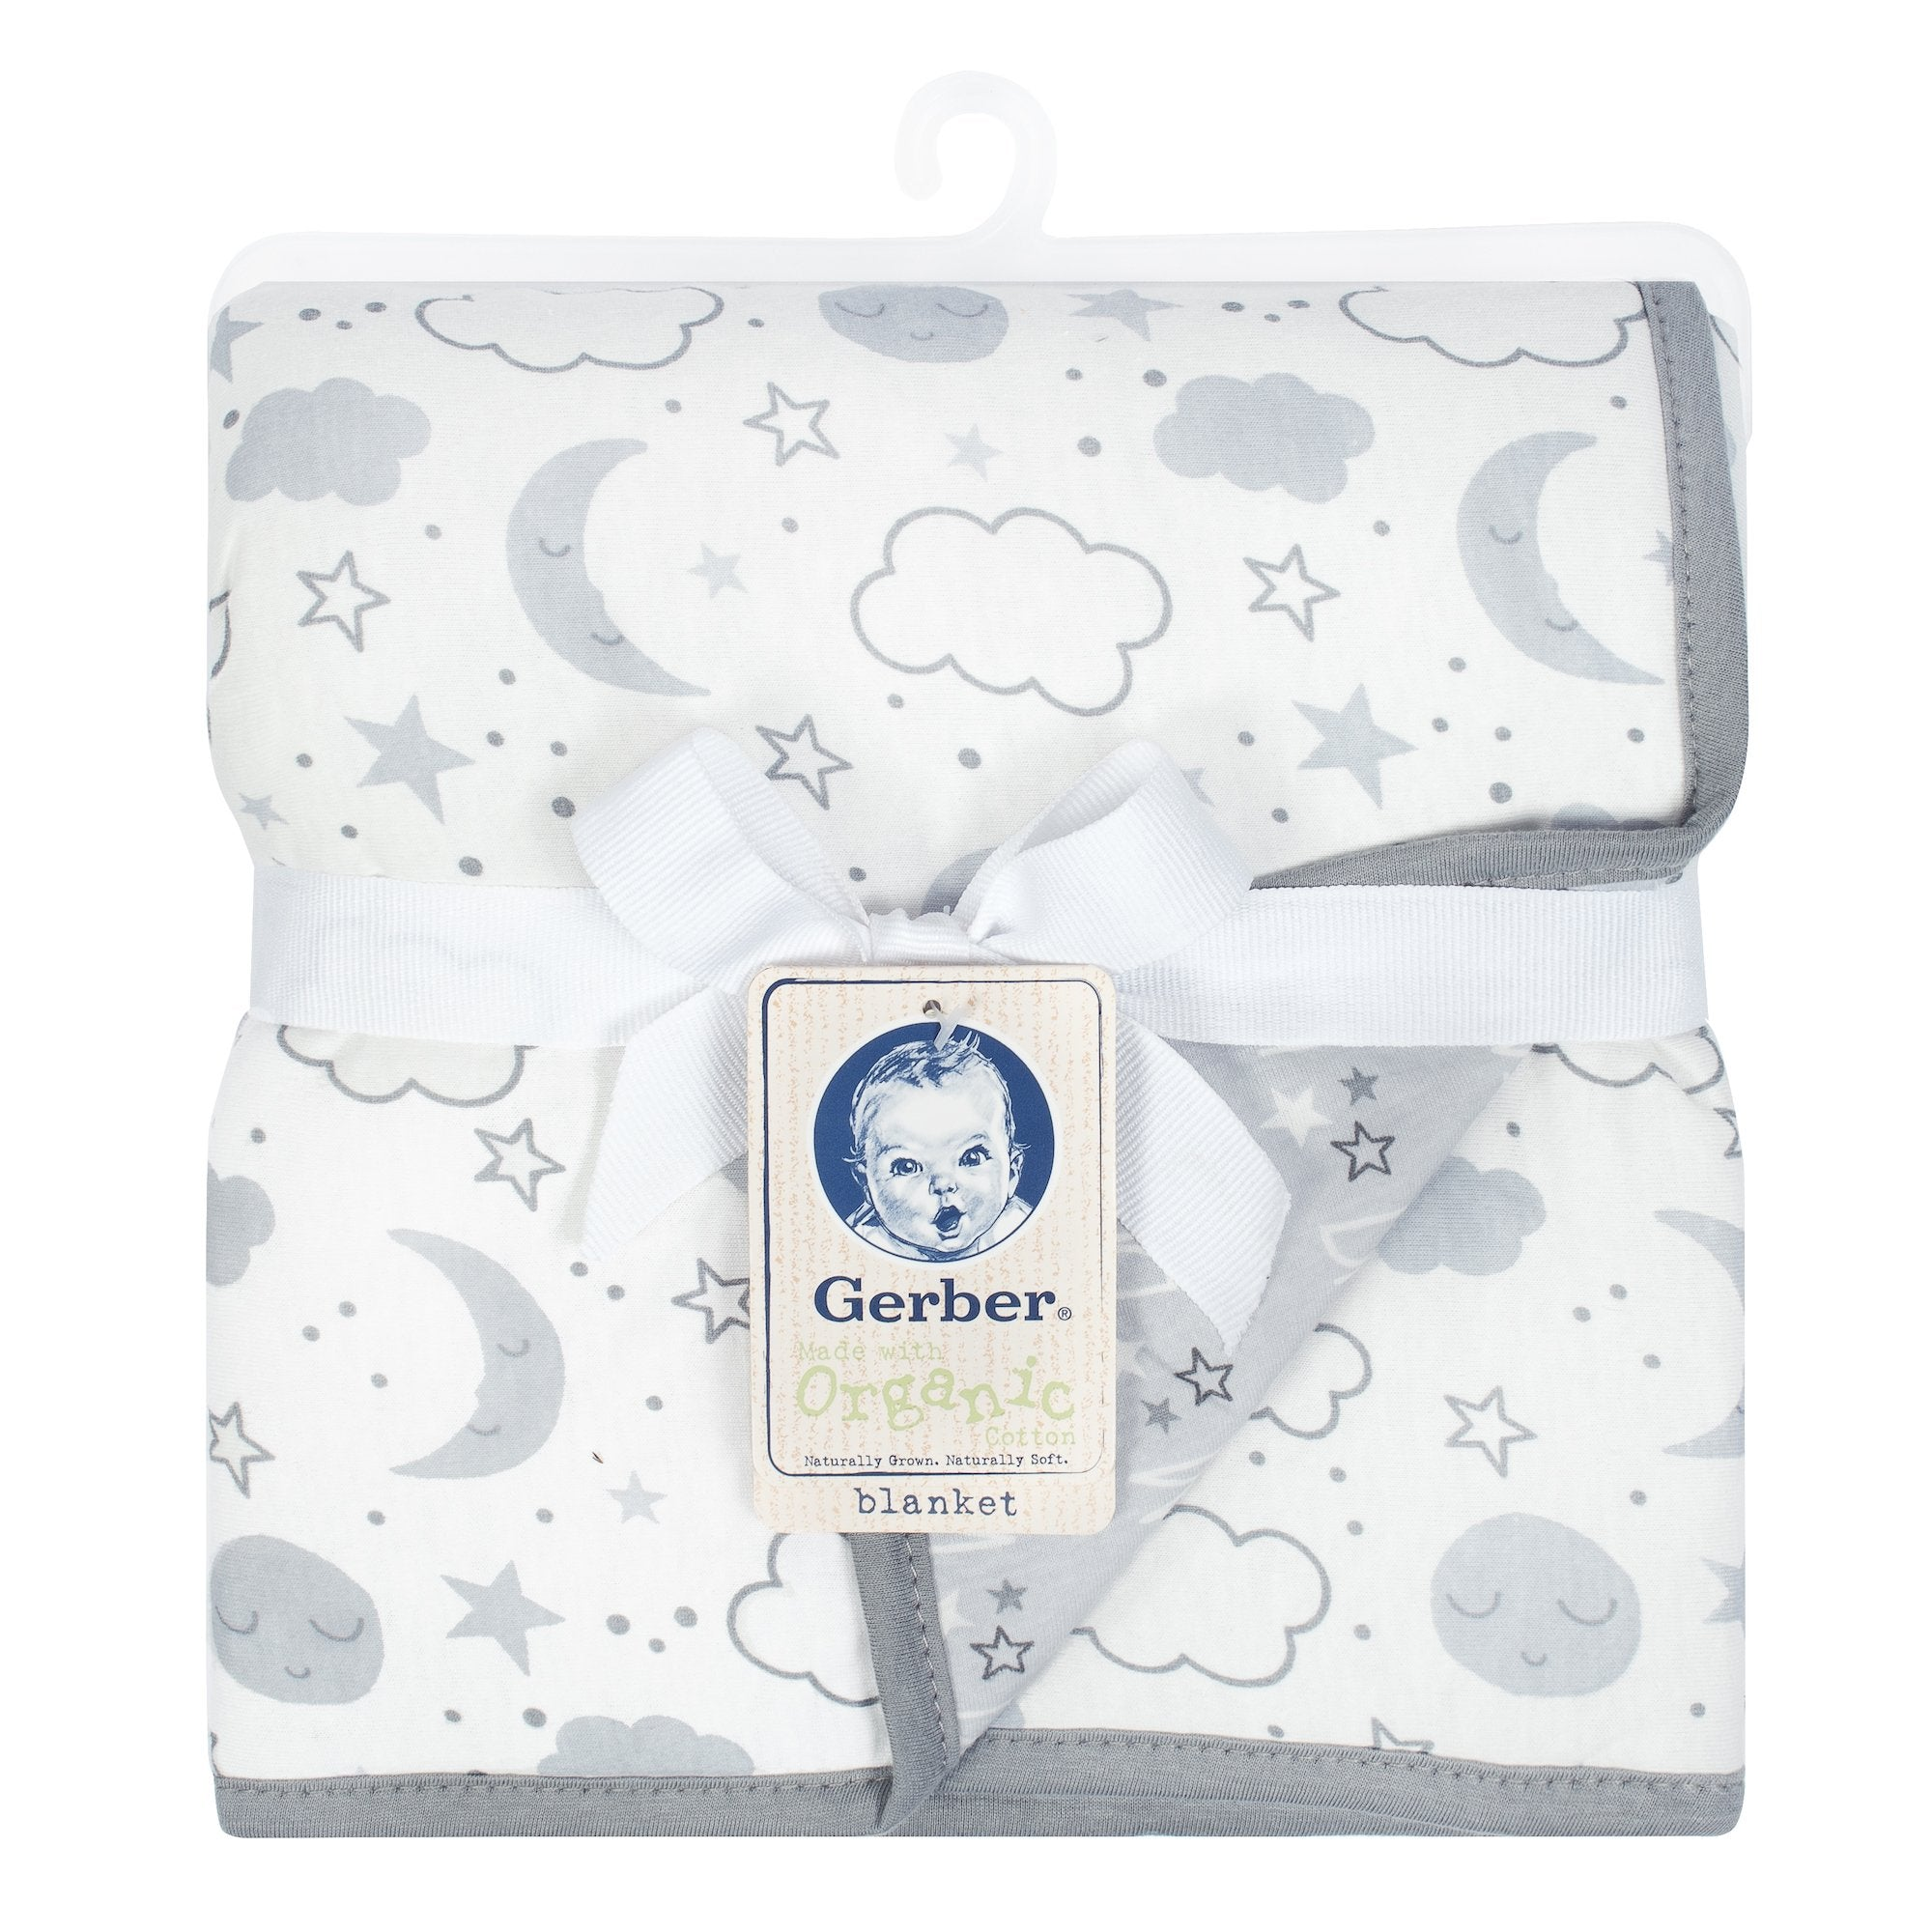 1-Pack Neutral Clouds Organic 2 Ply Blanket-Gerber Childrenswear Wholesale